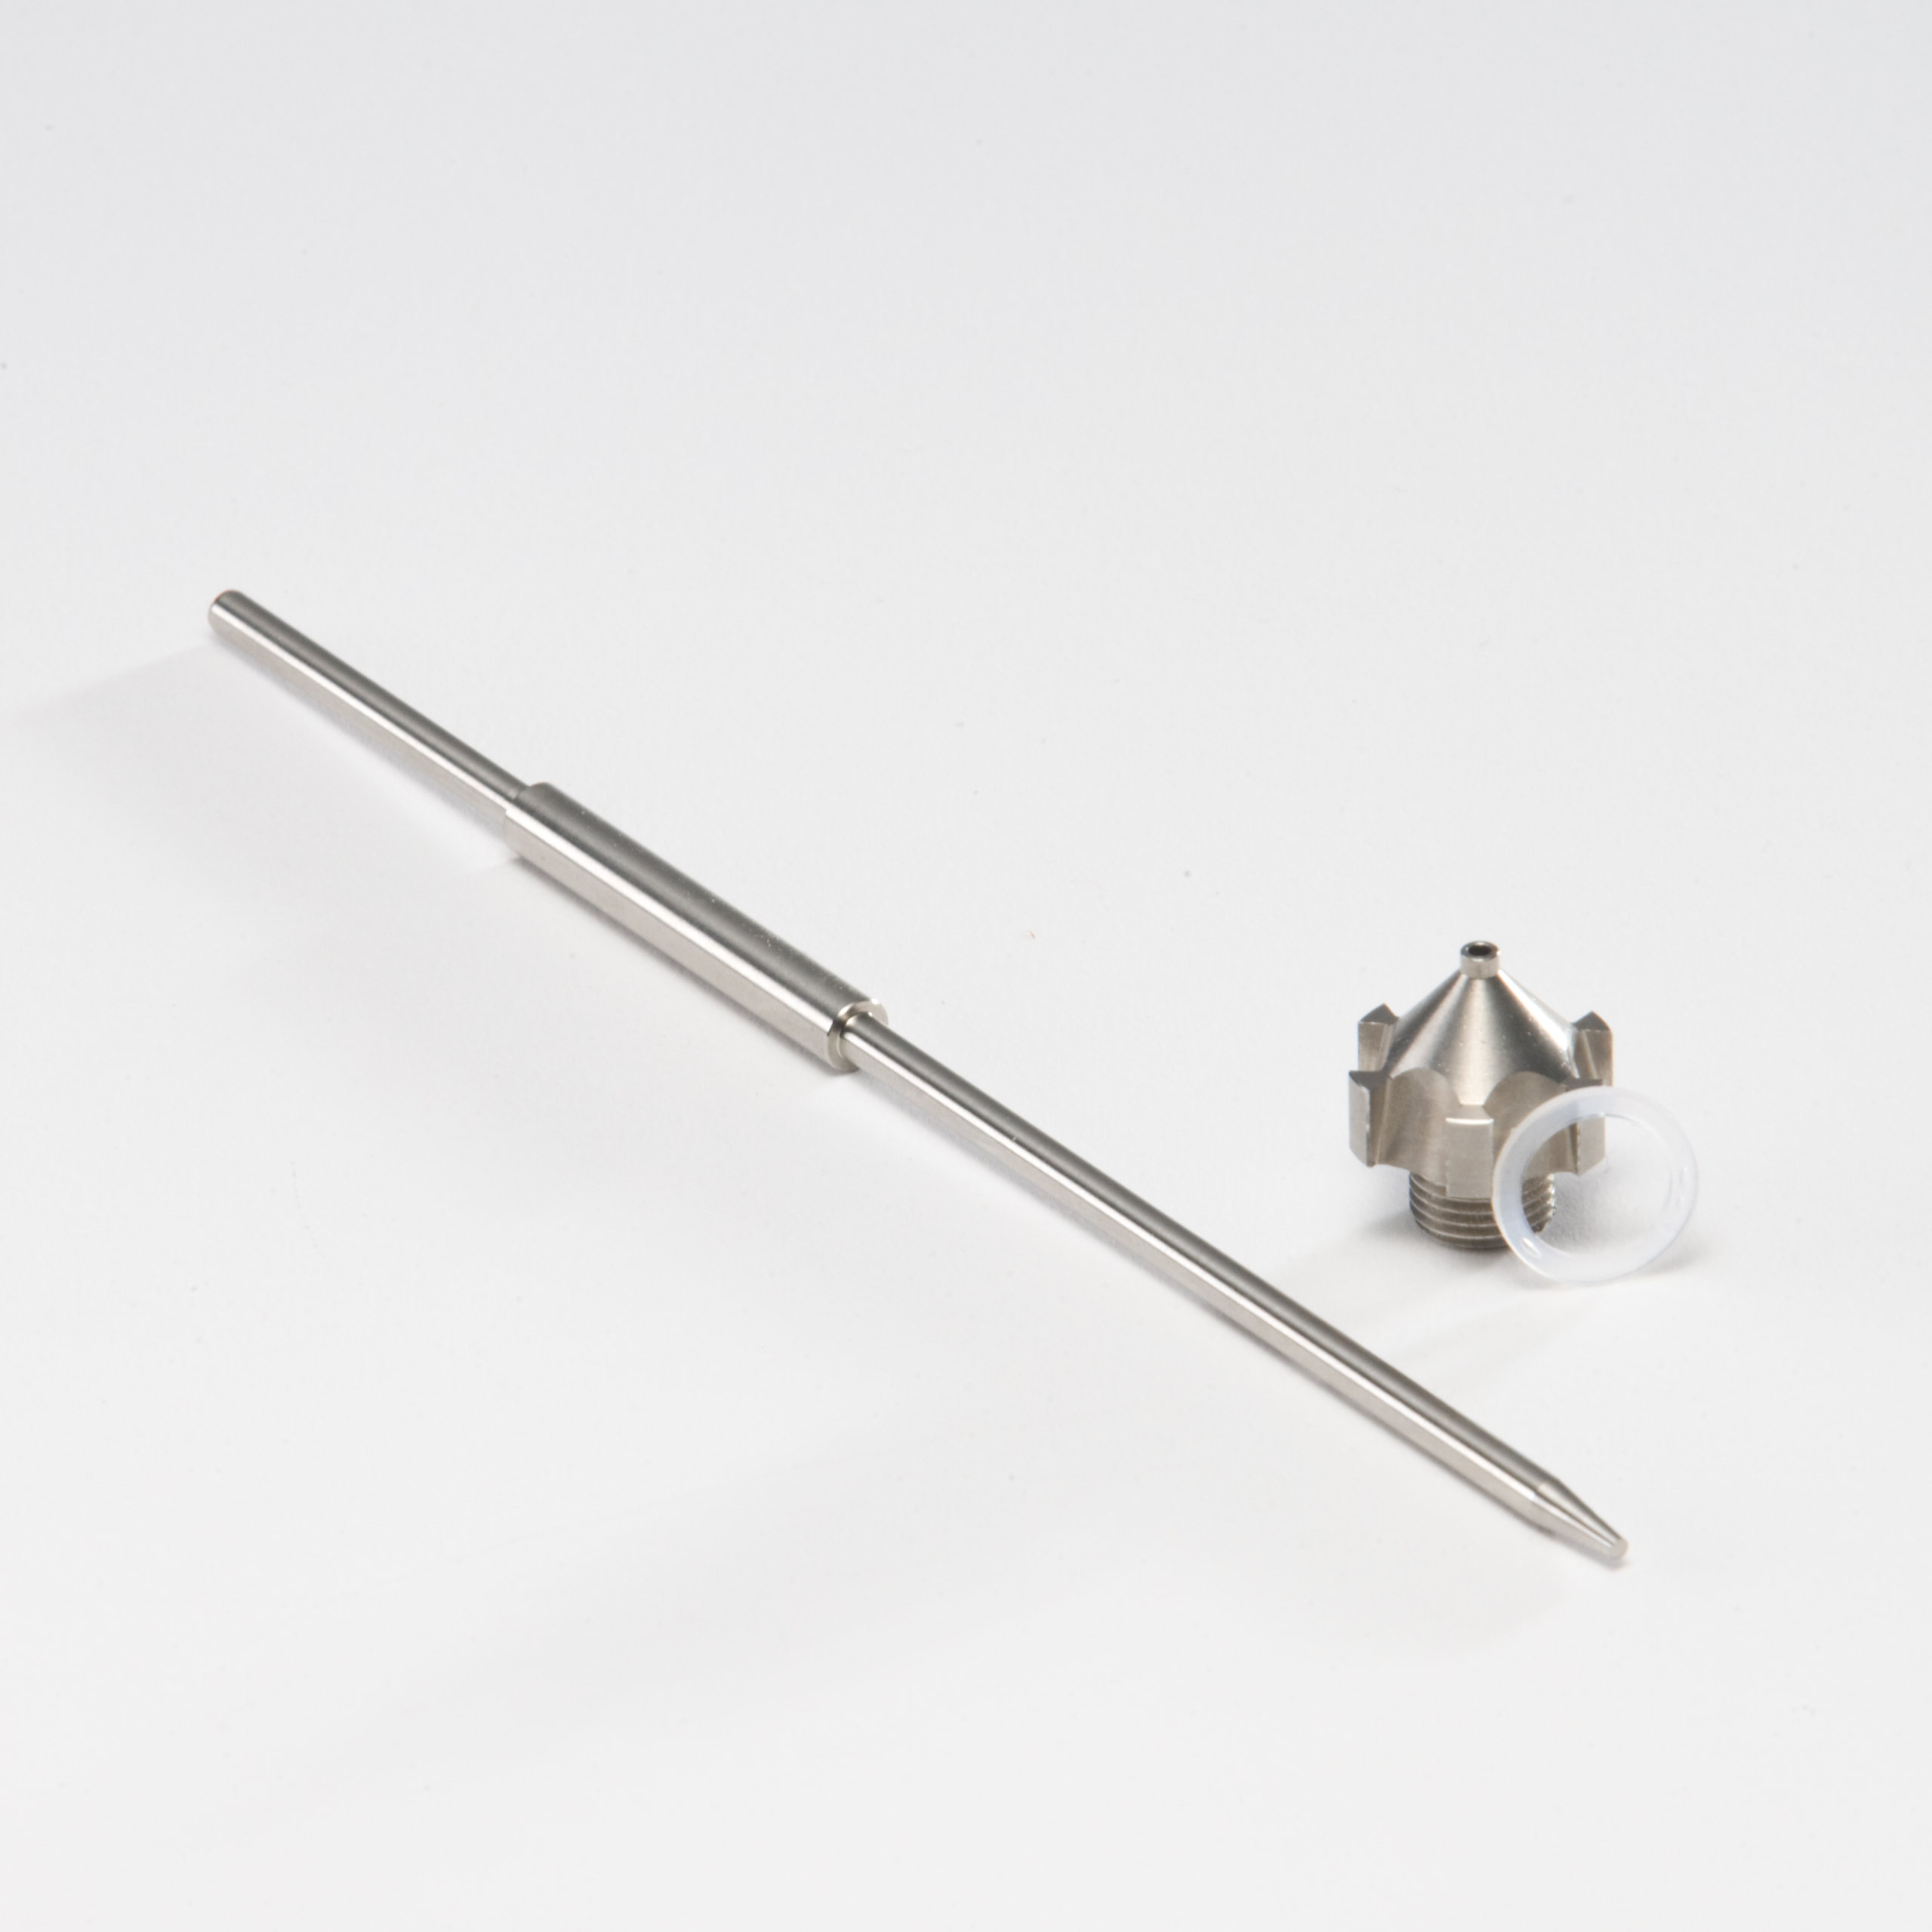 2.0mm Stainless Steel Needle and Tip